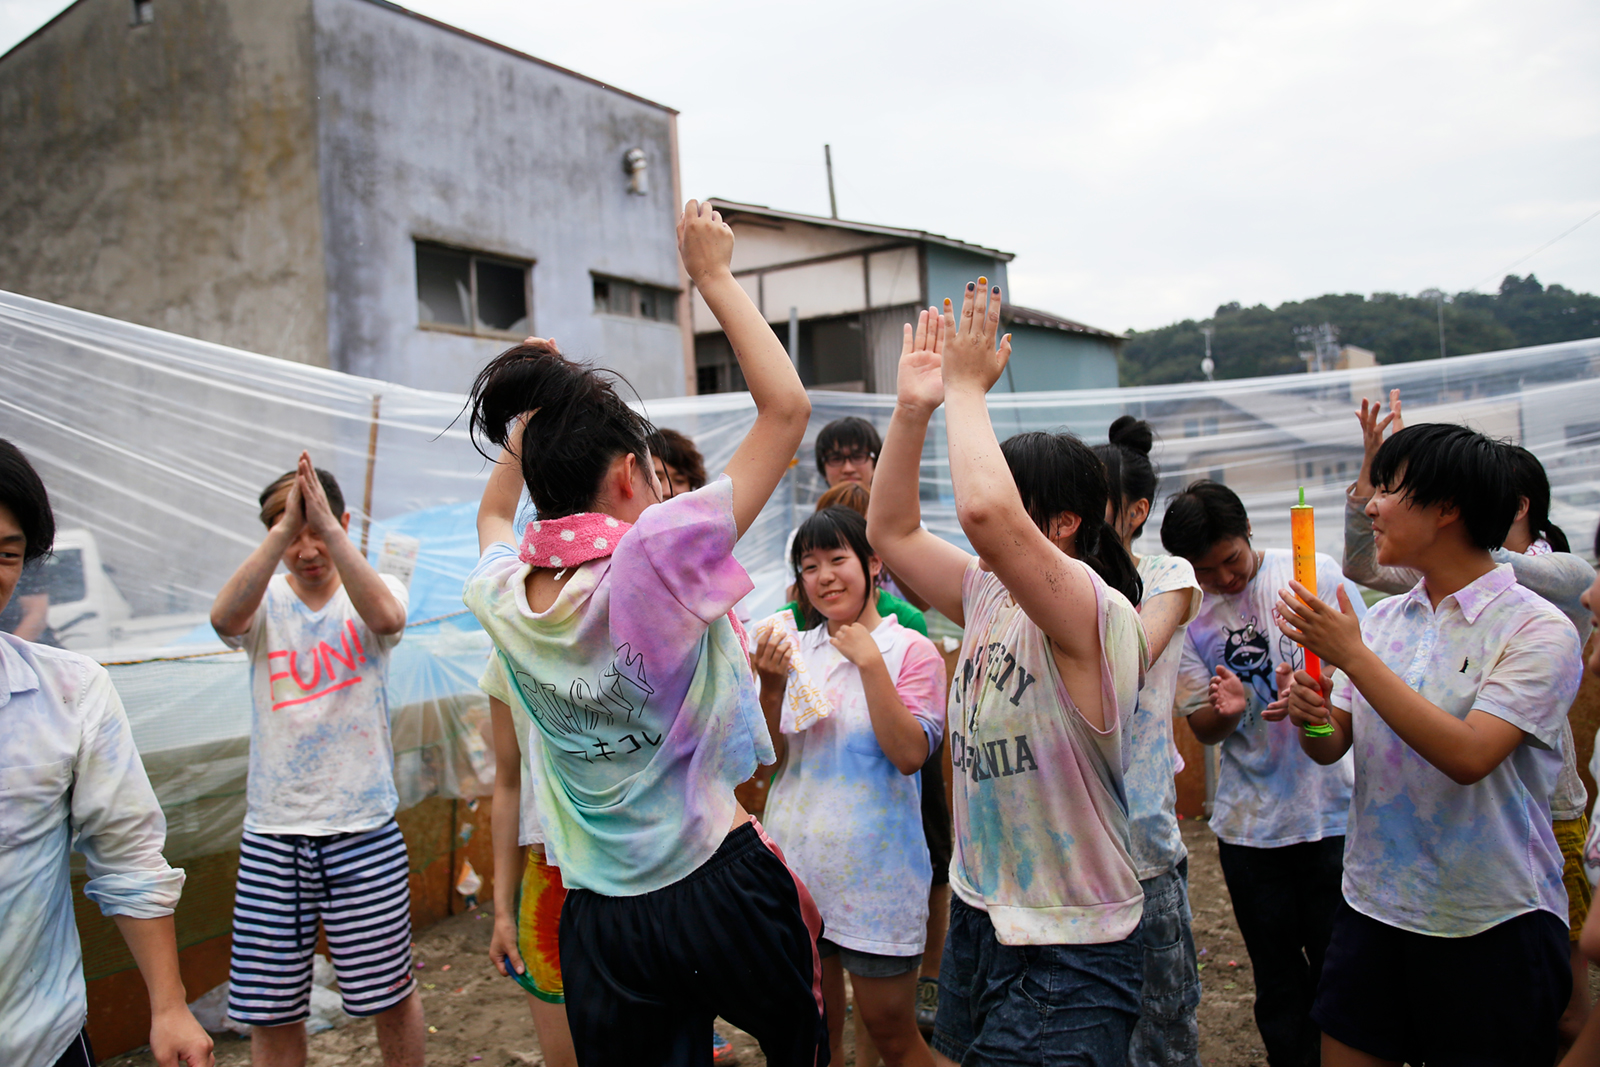 Ishinomaki Color Fight, organized by local high school students.